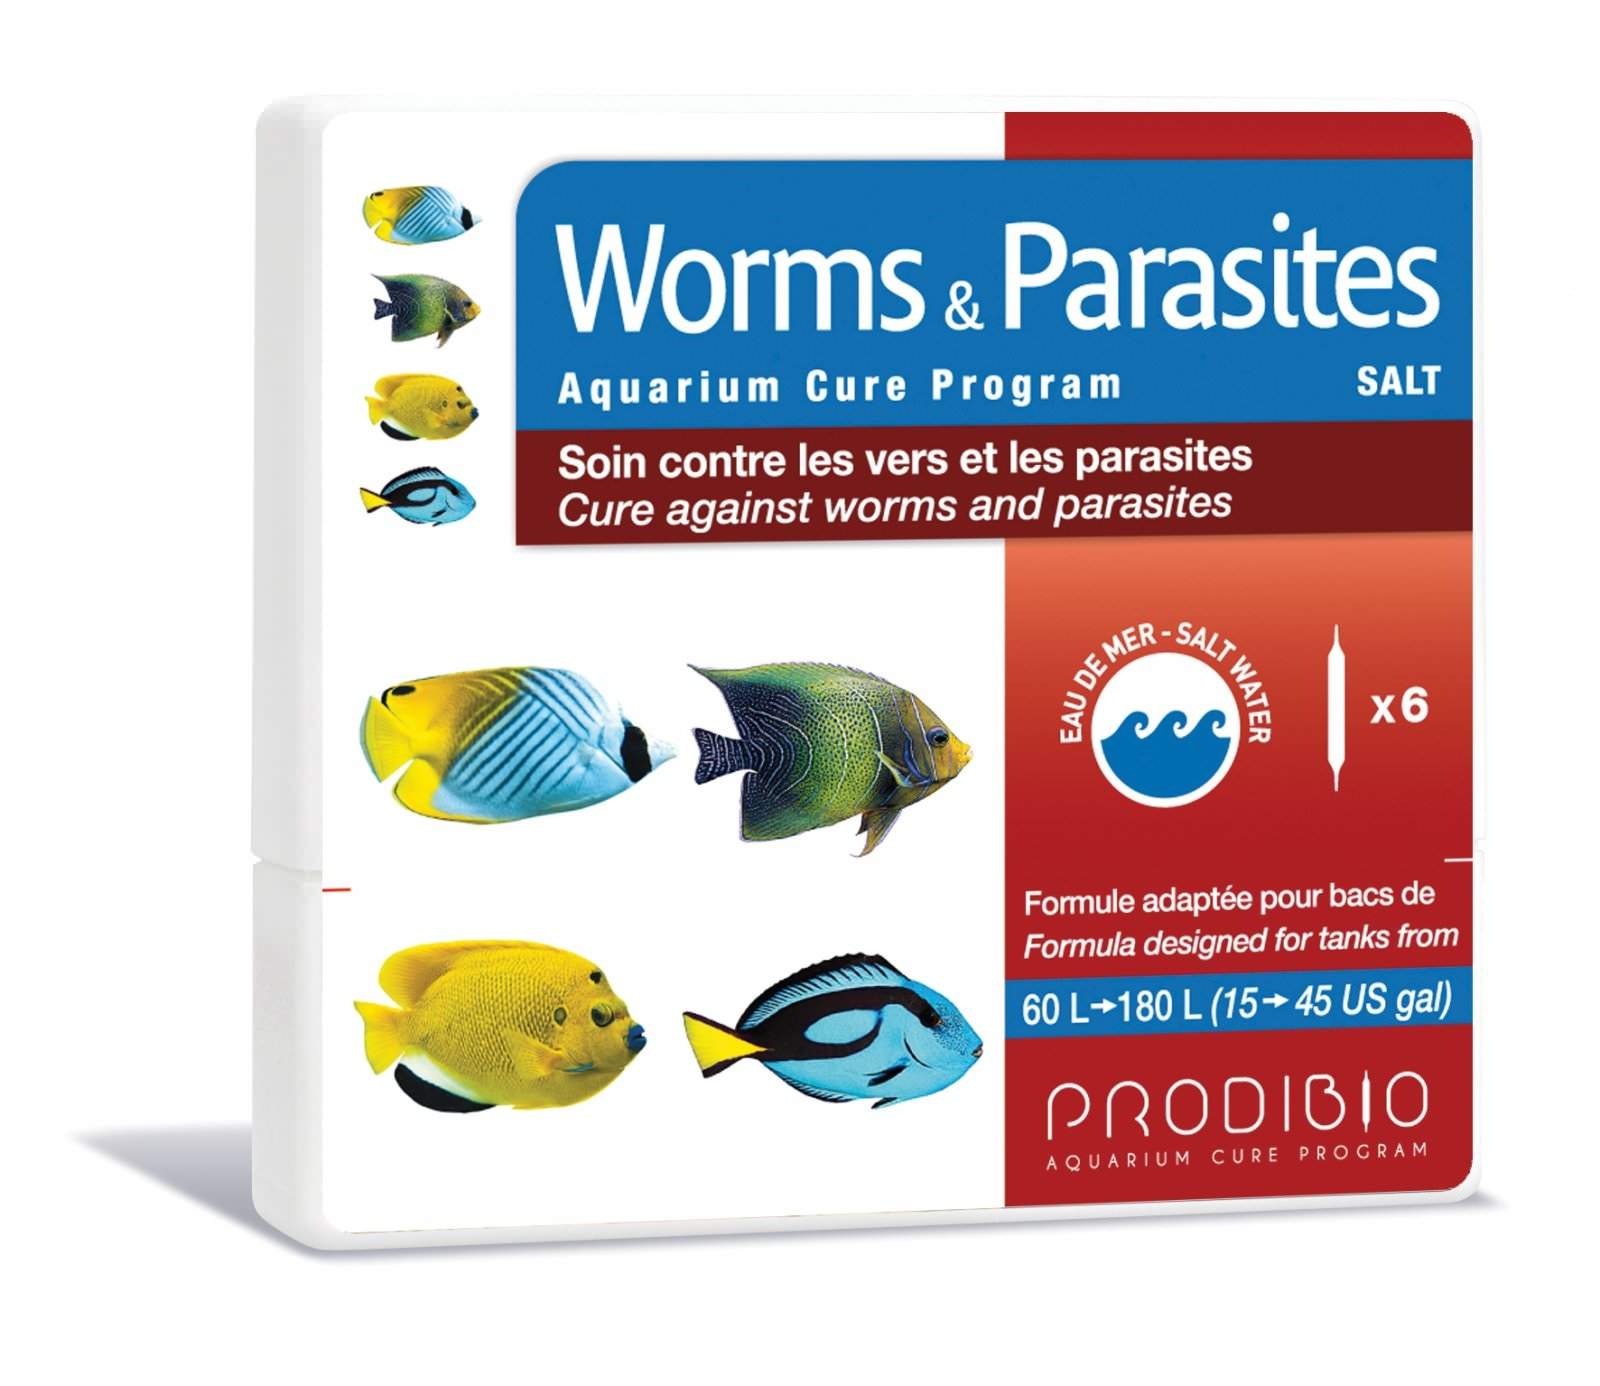 worms_parasites_salt_prodibio